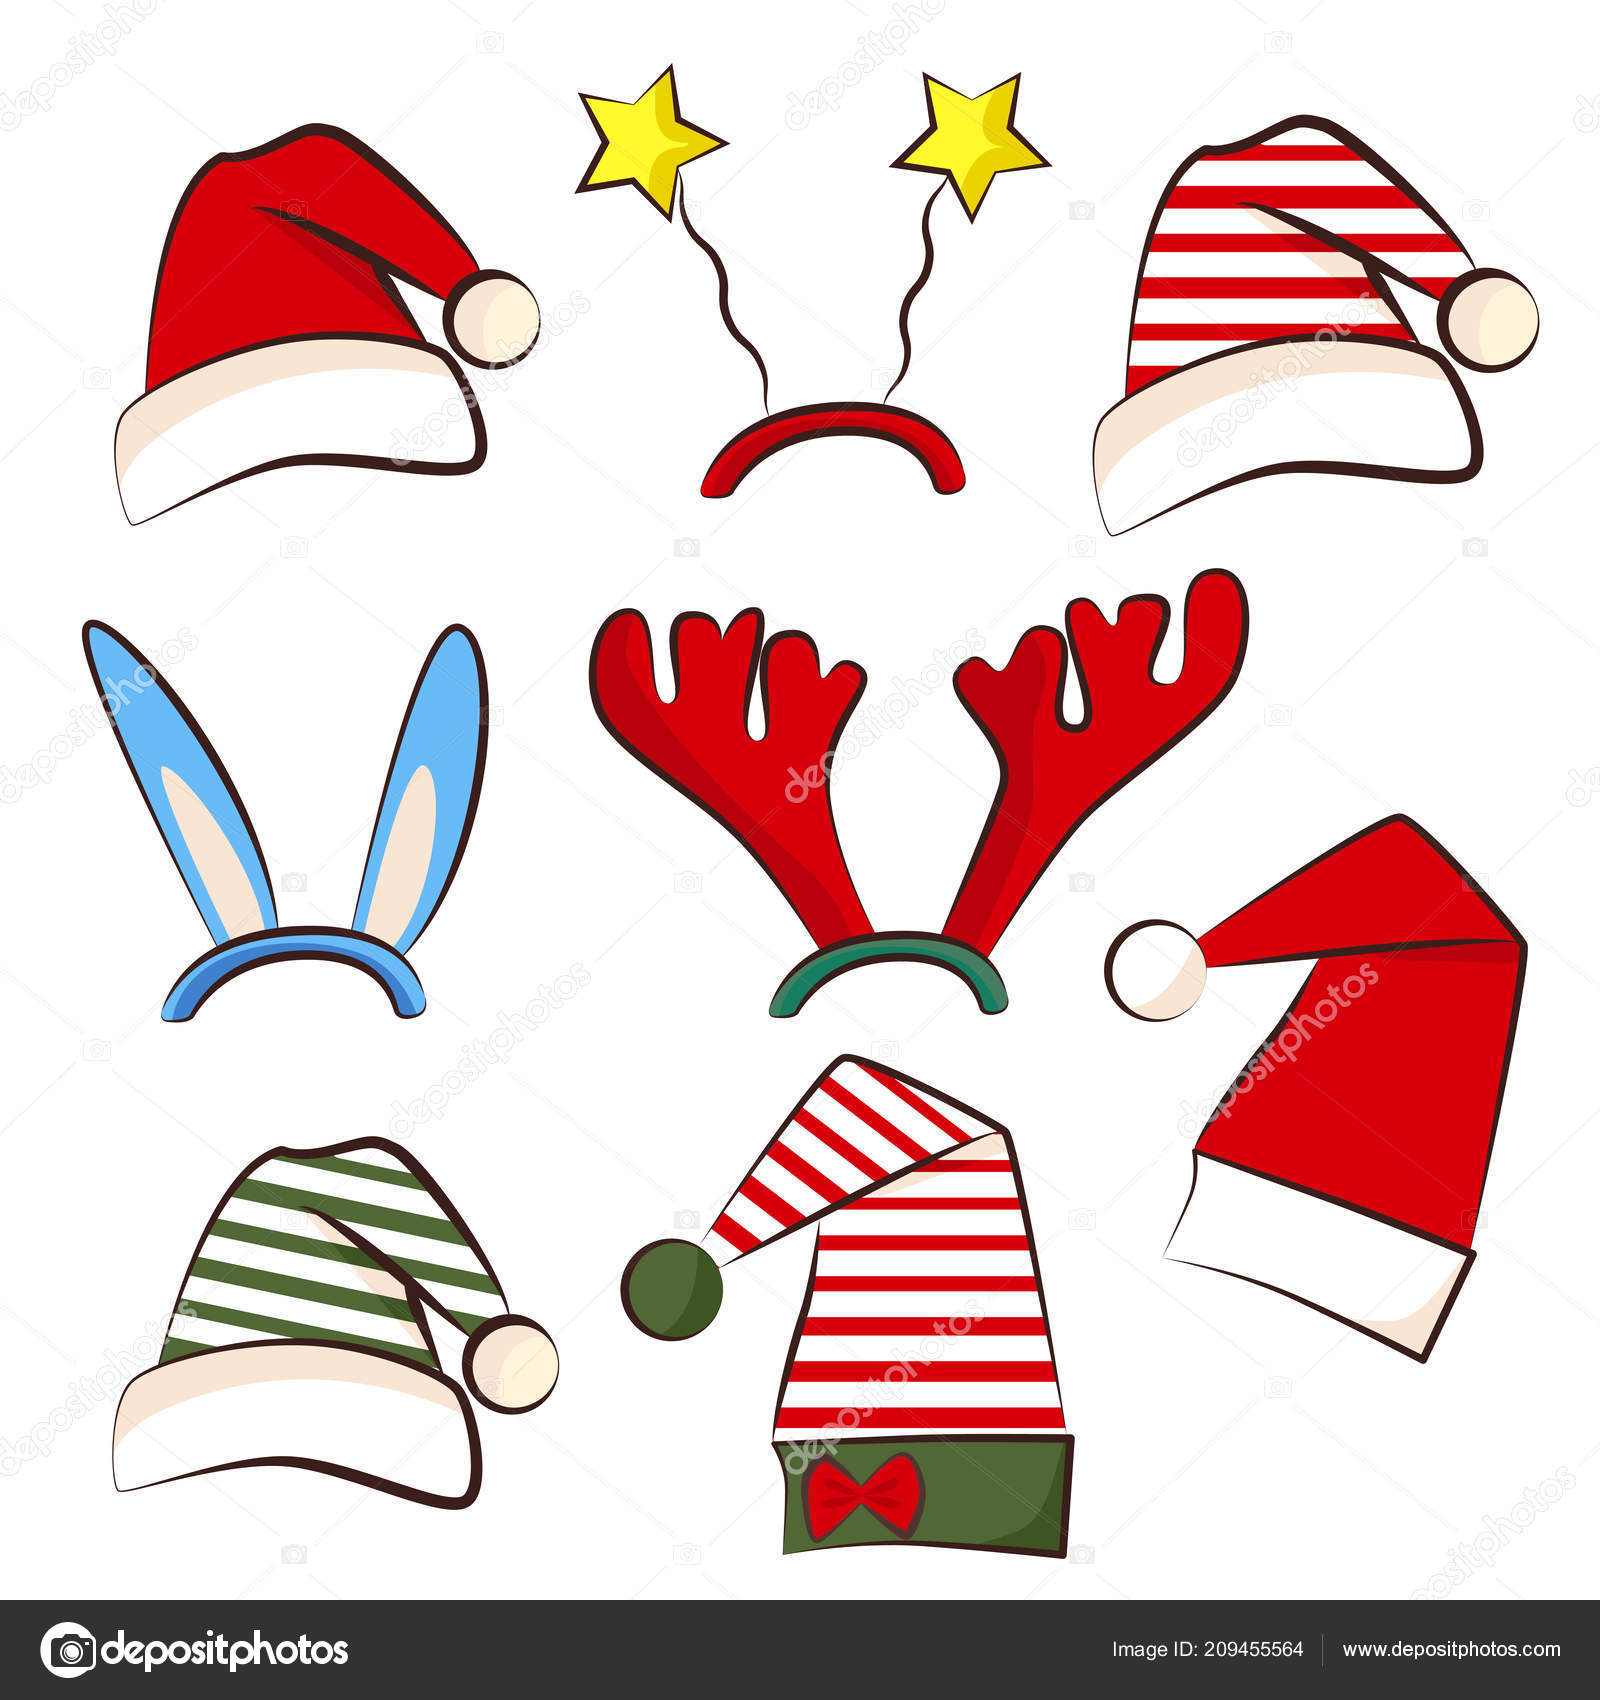 christmas bright party hat set for photo booth xmas party antler star and star hat traditional santa and elf hats for new year celebration vector by